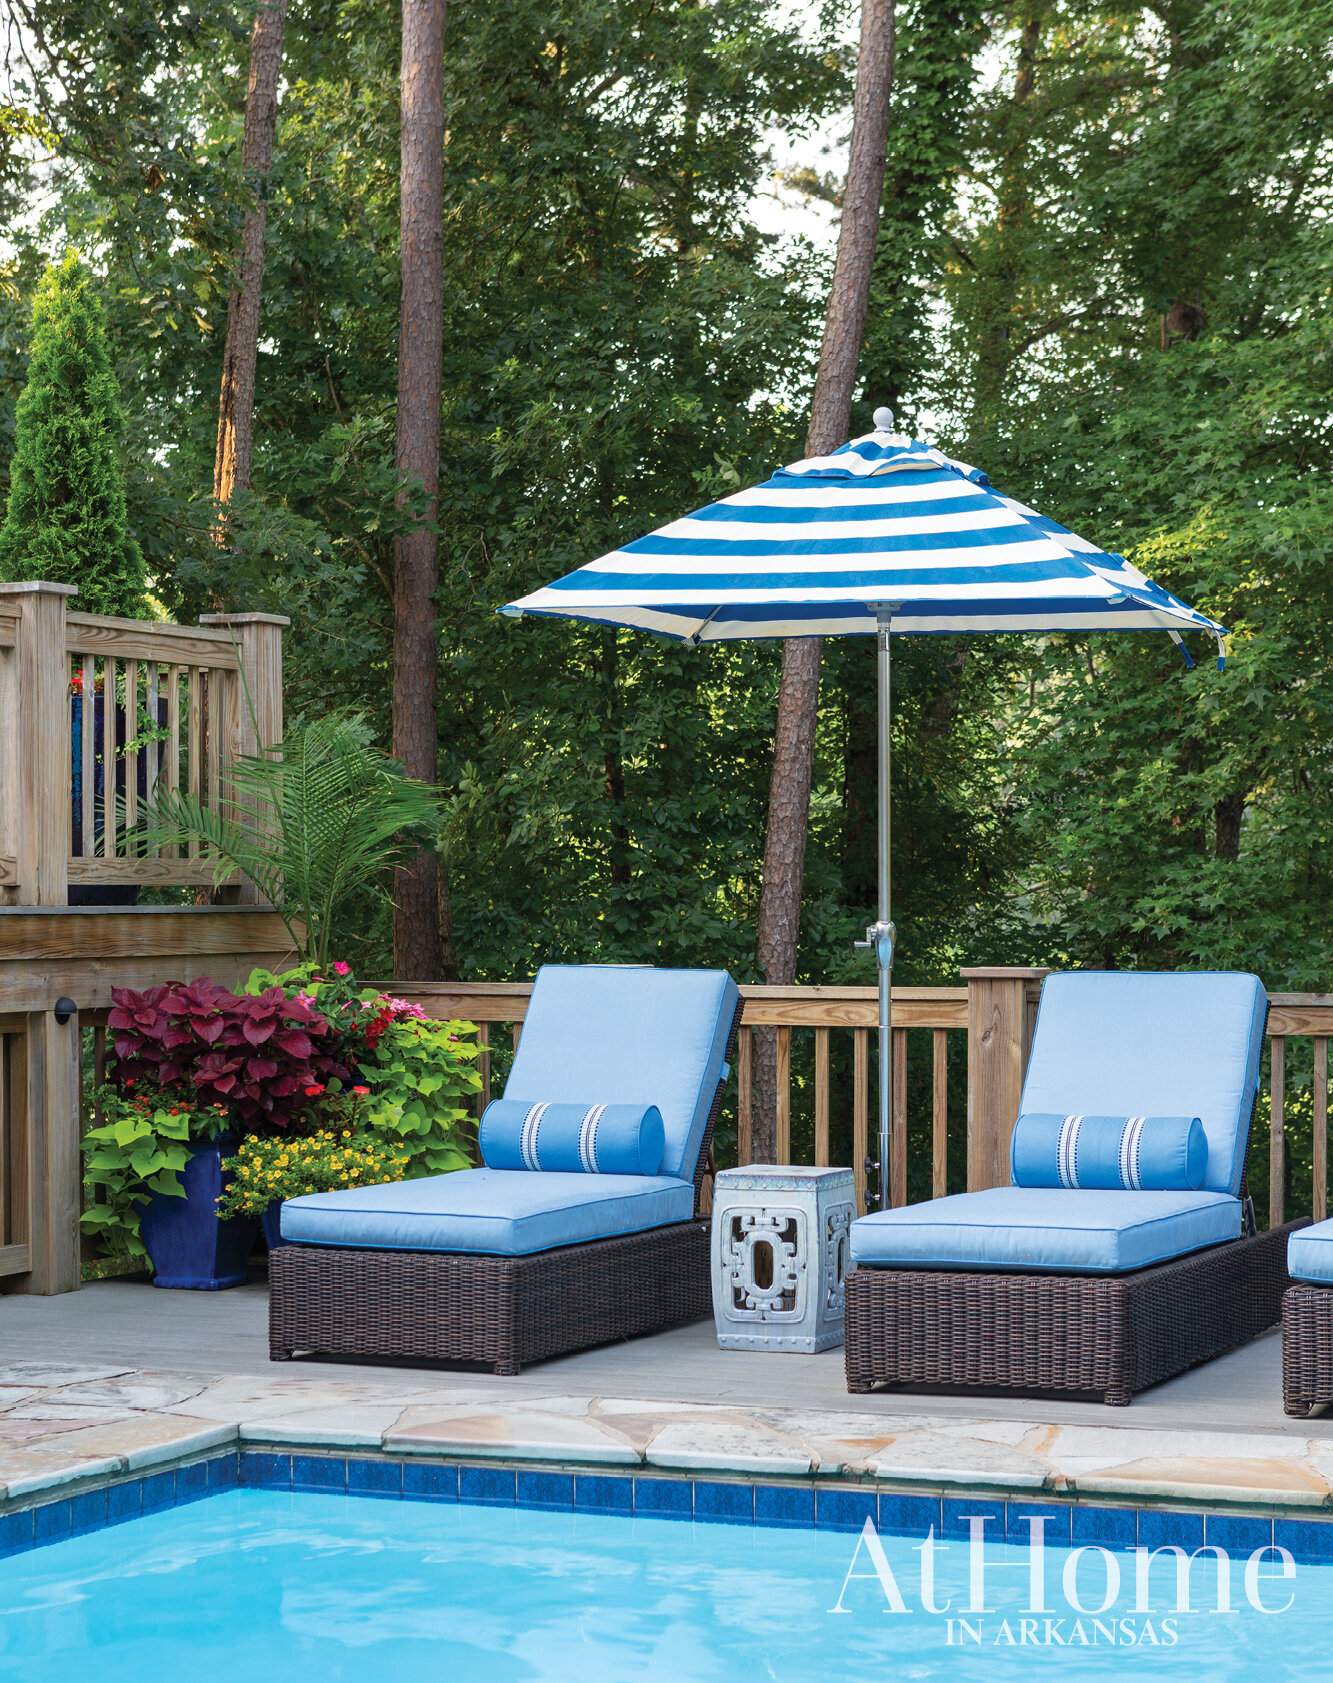 BACKYARD OASIS - As seen in the 2019 Family Issue of At Home in Arkansas magazine.